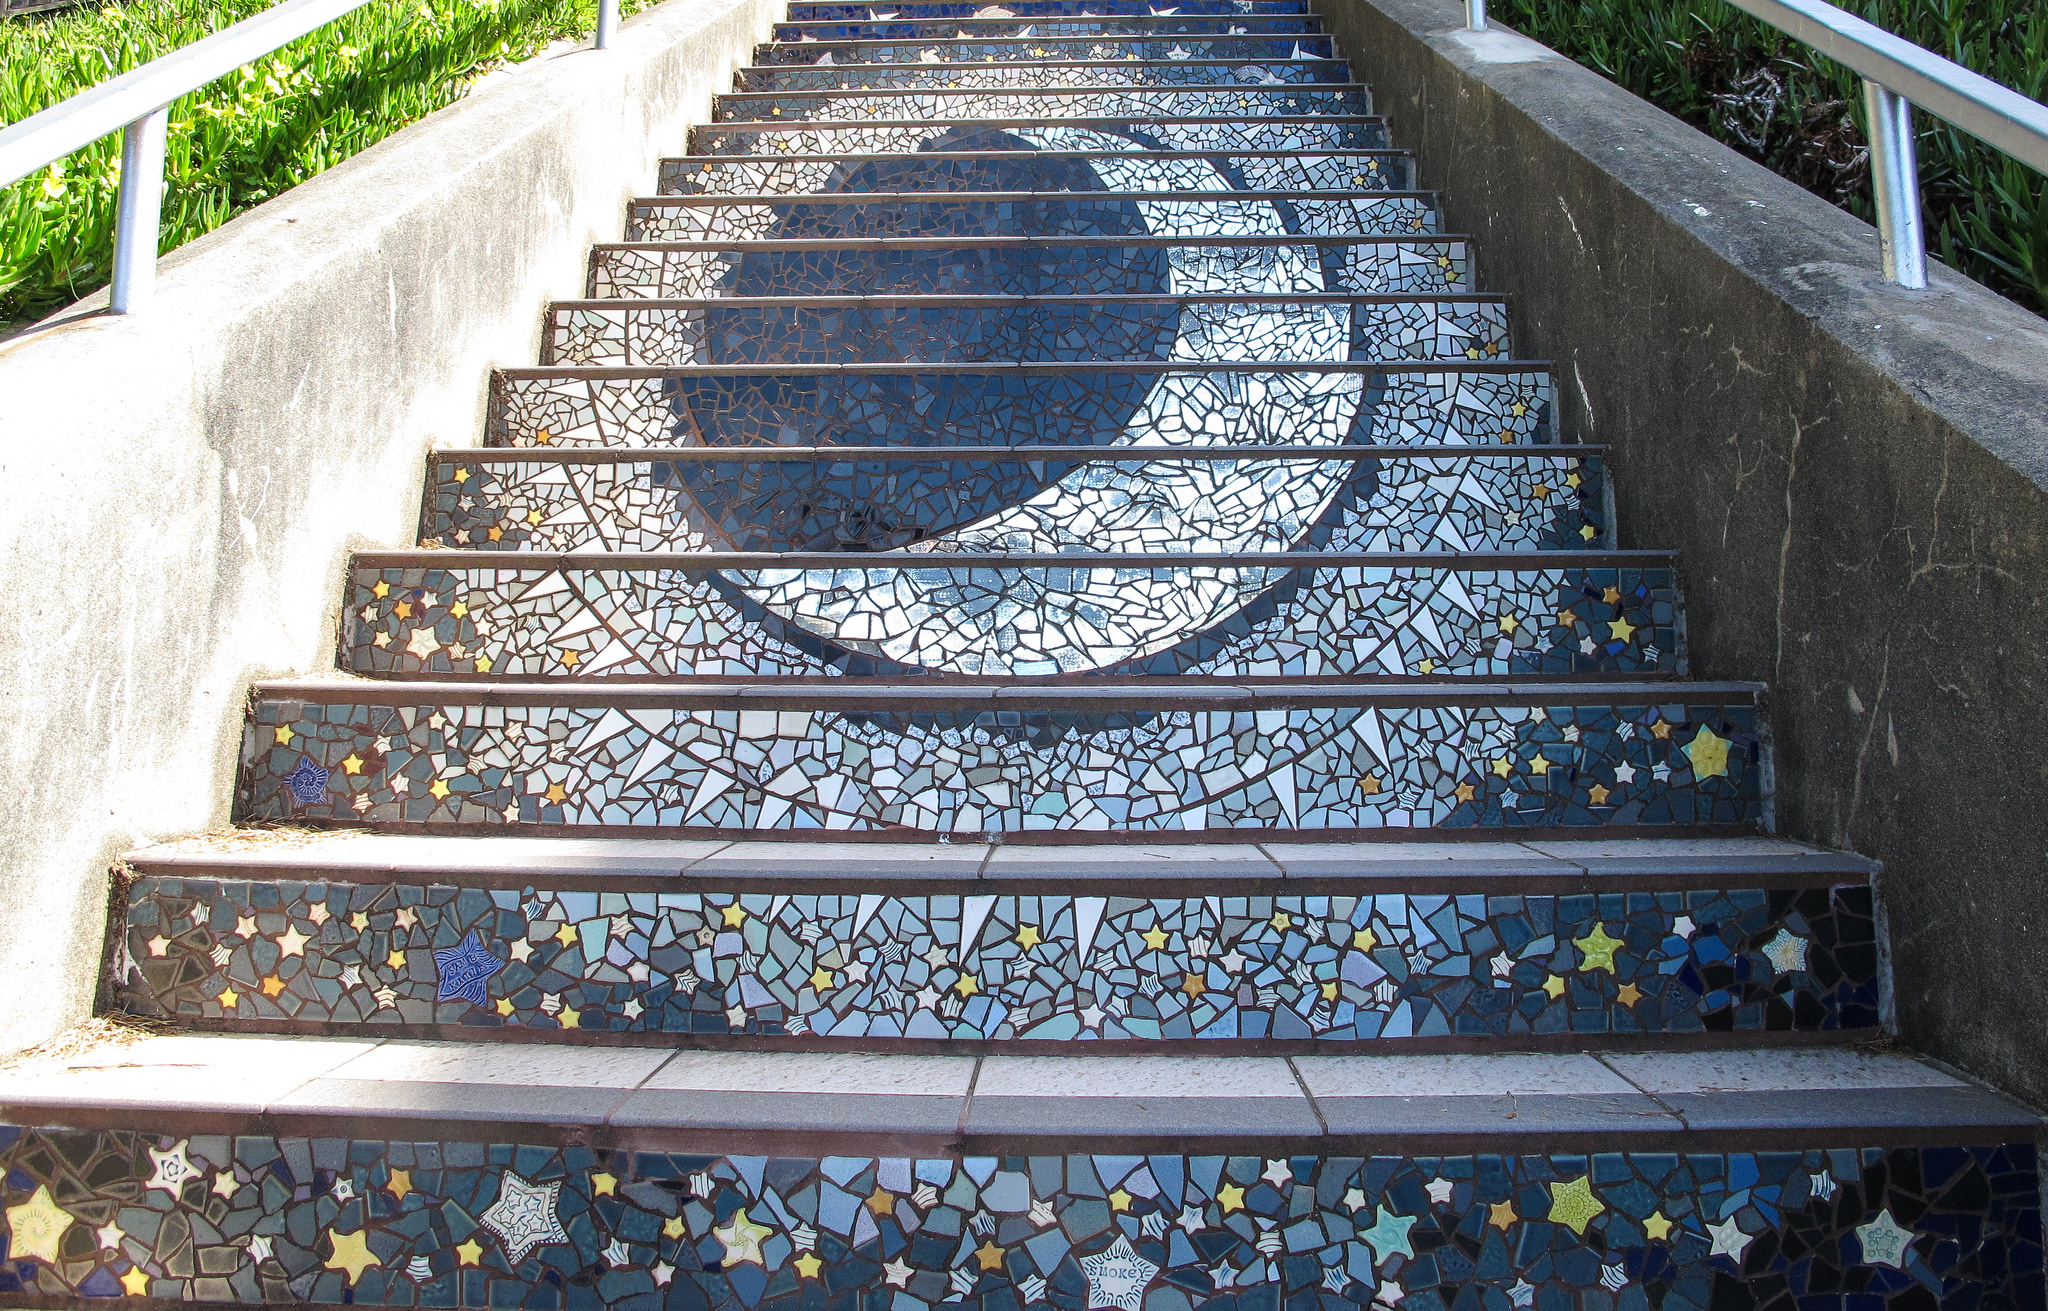 16th Avenue Tiled Steps © Ed Bierman/Flickr